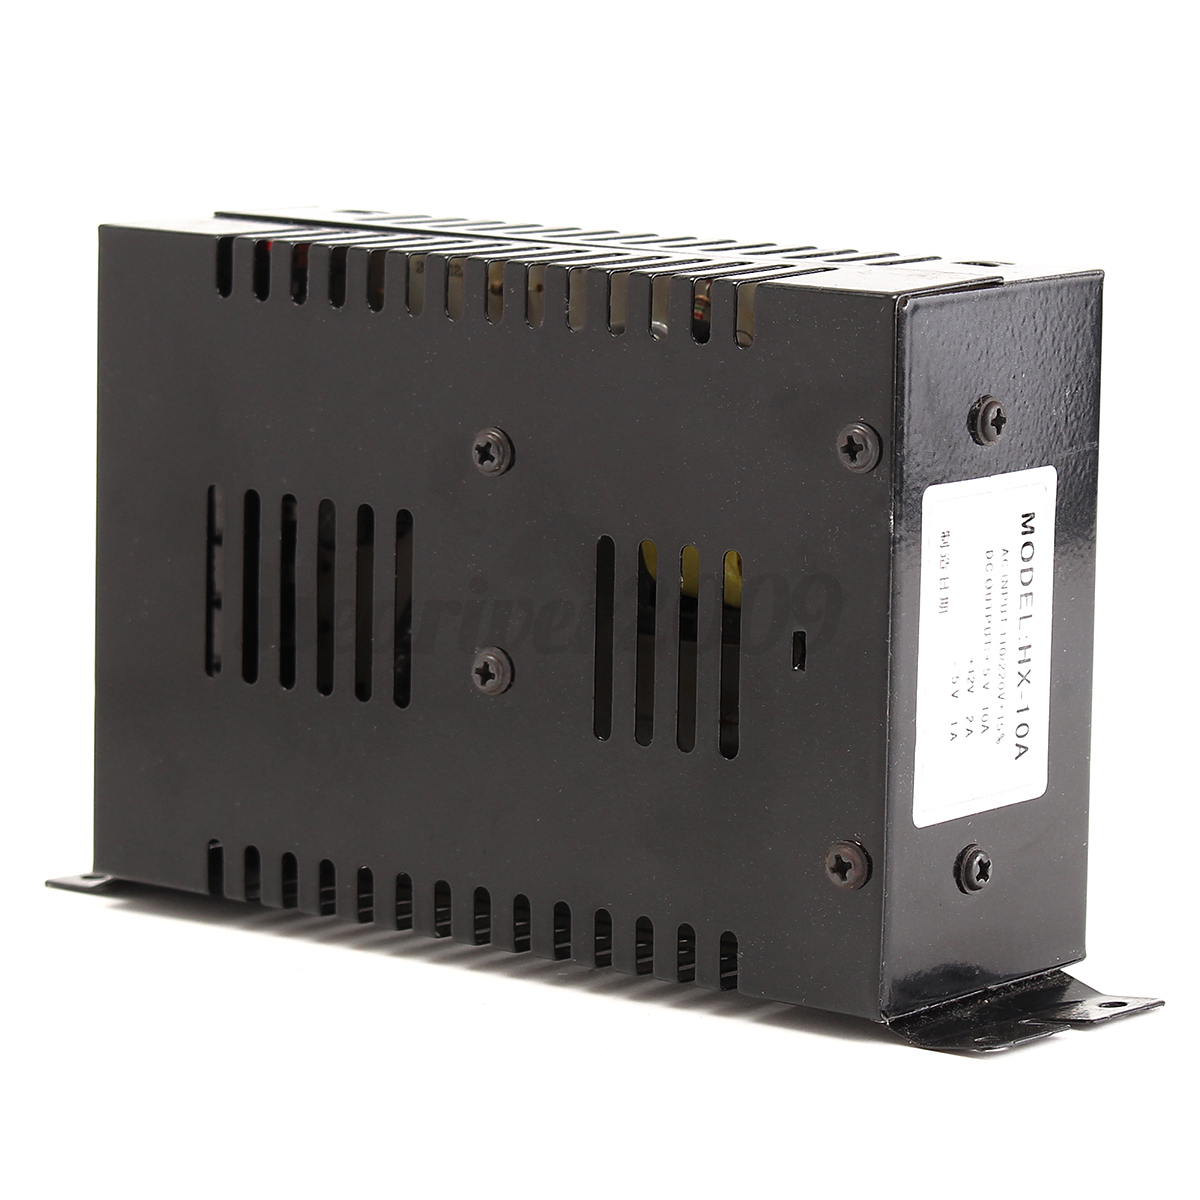 200977 554675443 also Push Pull Squarewave Dc To Ac Inverter additionally 4957 additionally S 360 12 20DC 200 12V 2030A 20Regulated 20Switching 20Power 20Supply 20 20100 240V 20 further Qje Ps23swi 23   Switch Mode Power Supply. on 12v 10a switching power supply